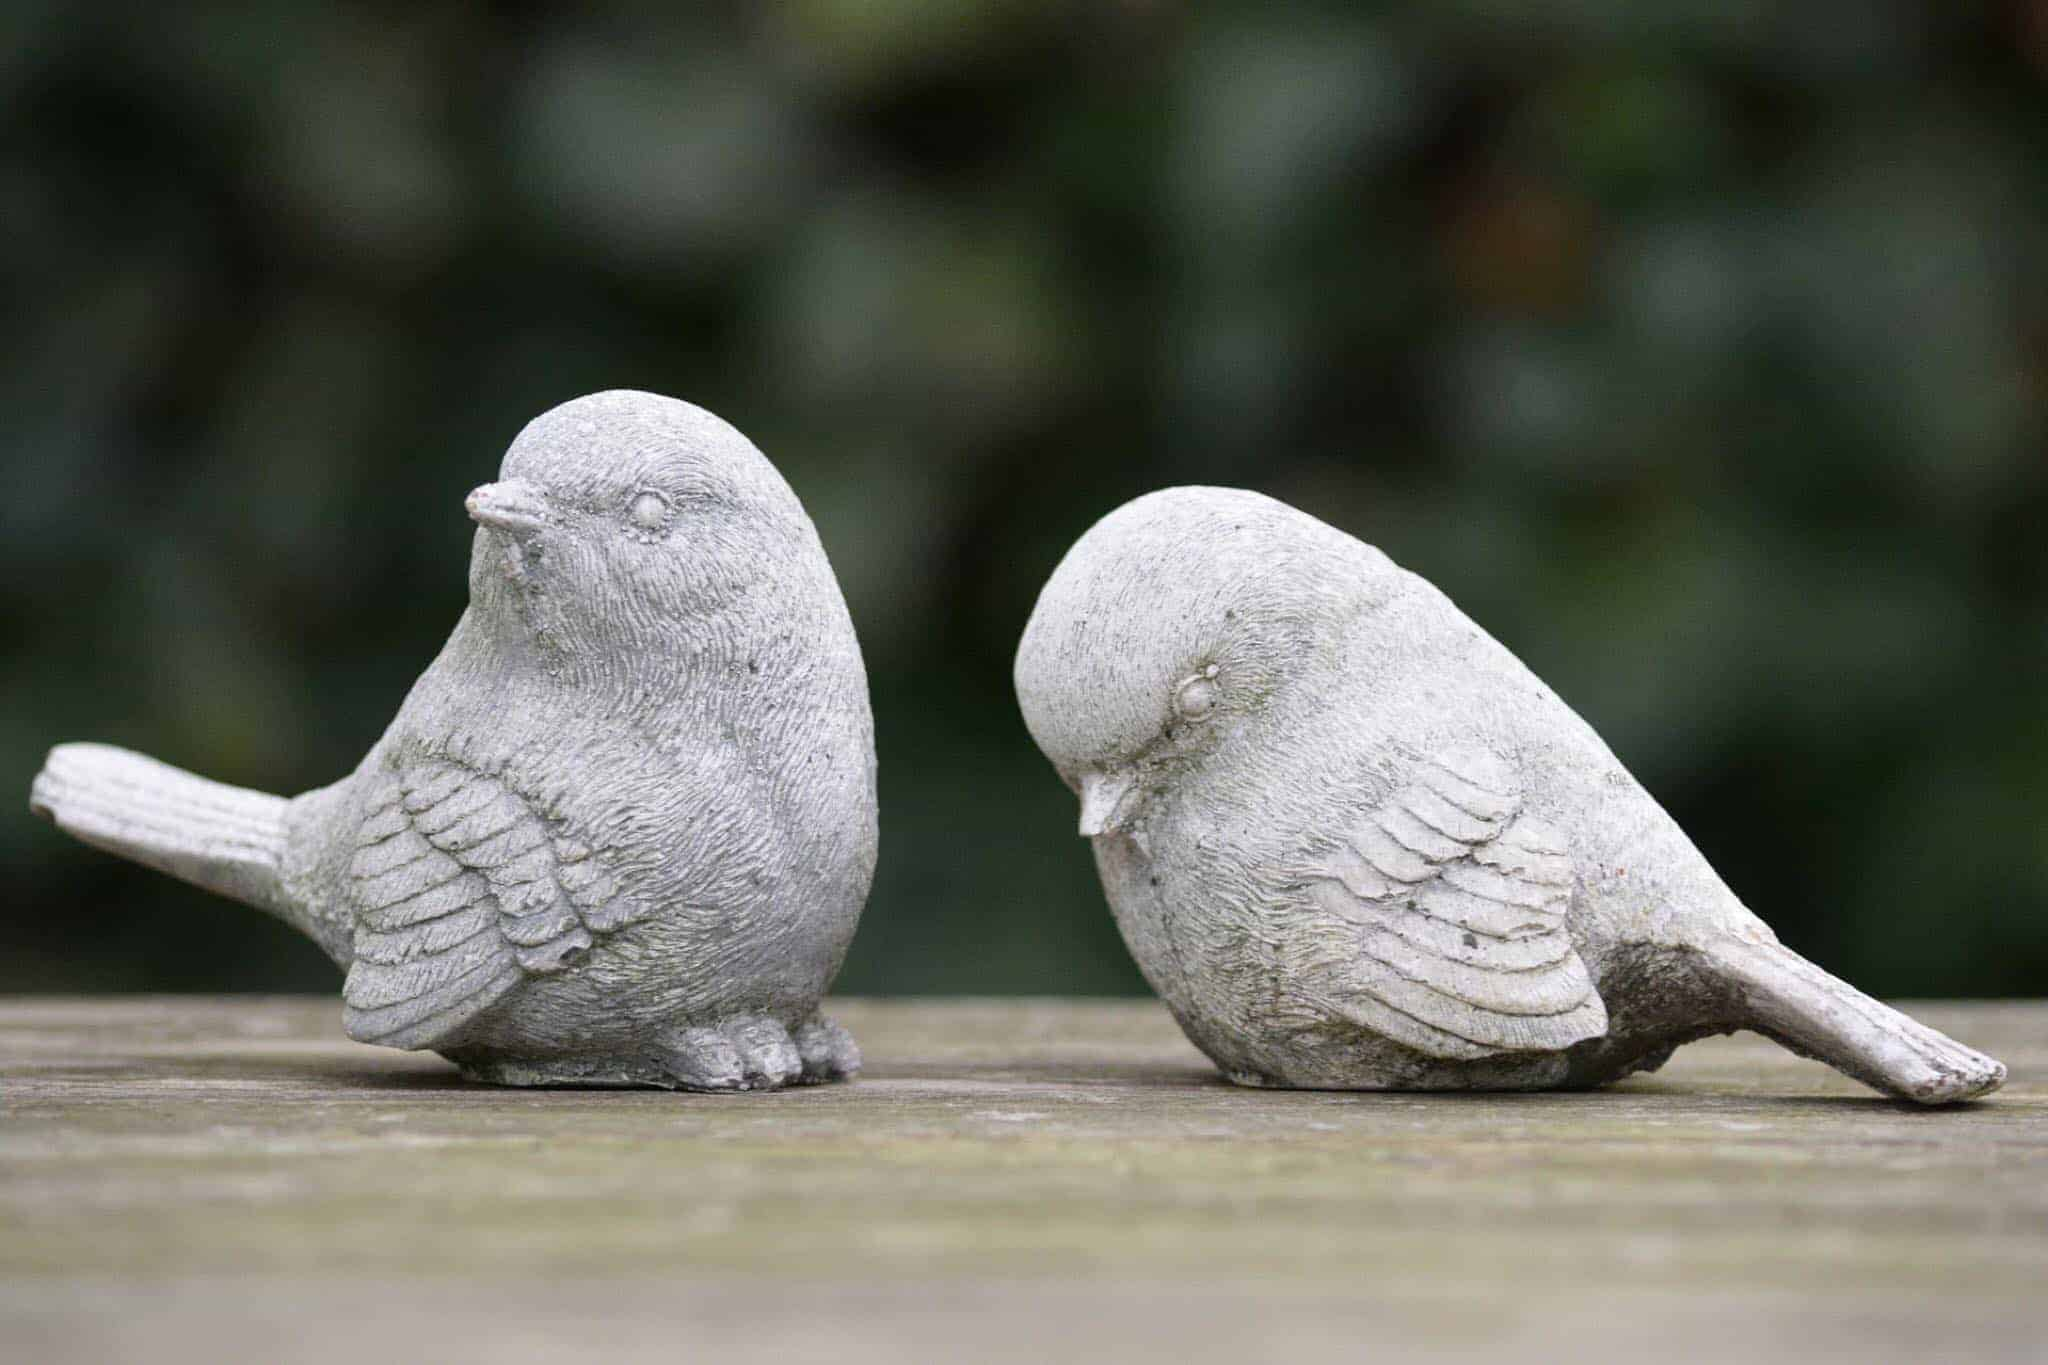 Two bird statues, one is looking up and the other is looking down.